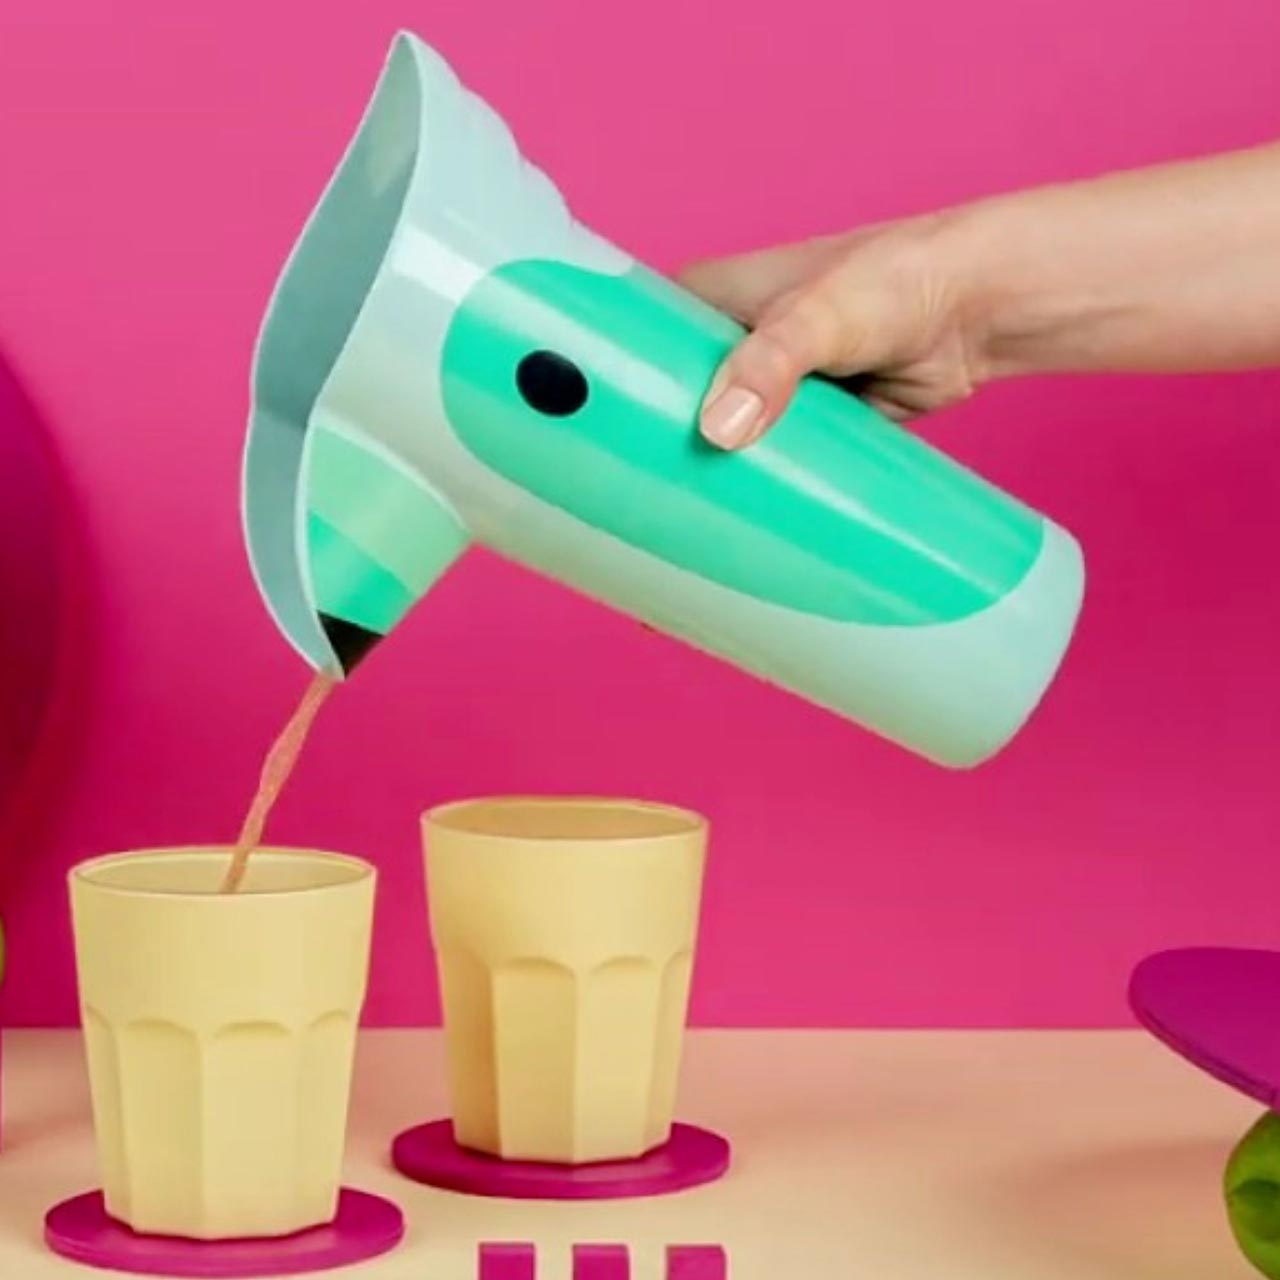 Toucan Polly Pitcher in Turquoise by Ototo   the design gift shop